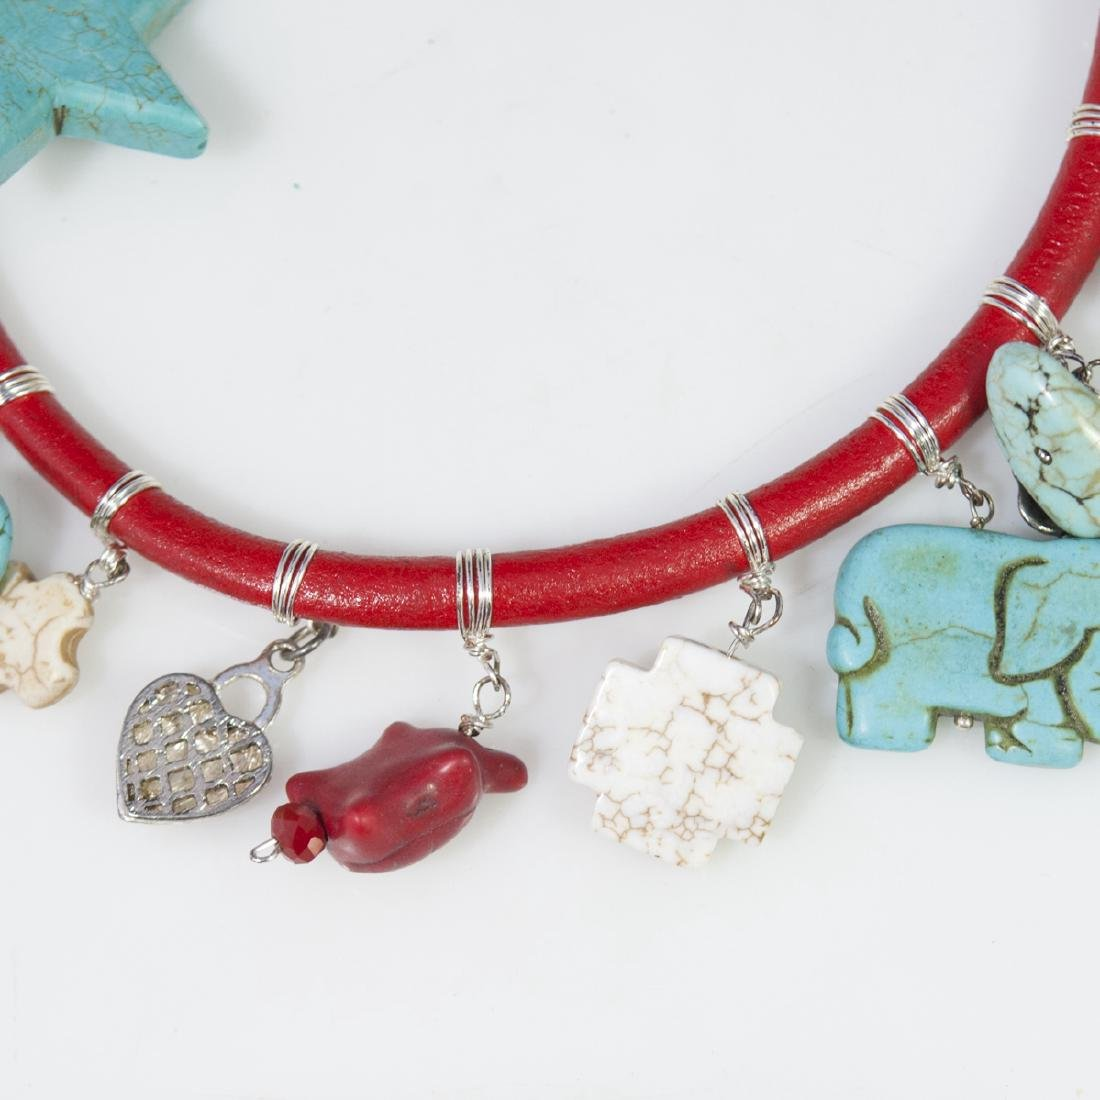 Leather Turquoise Choker Necklace - 2